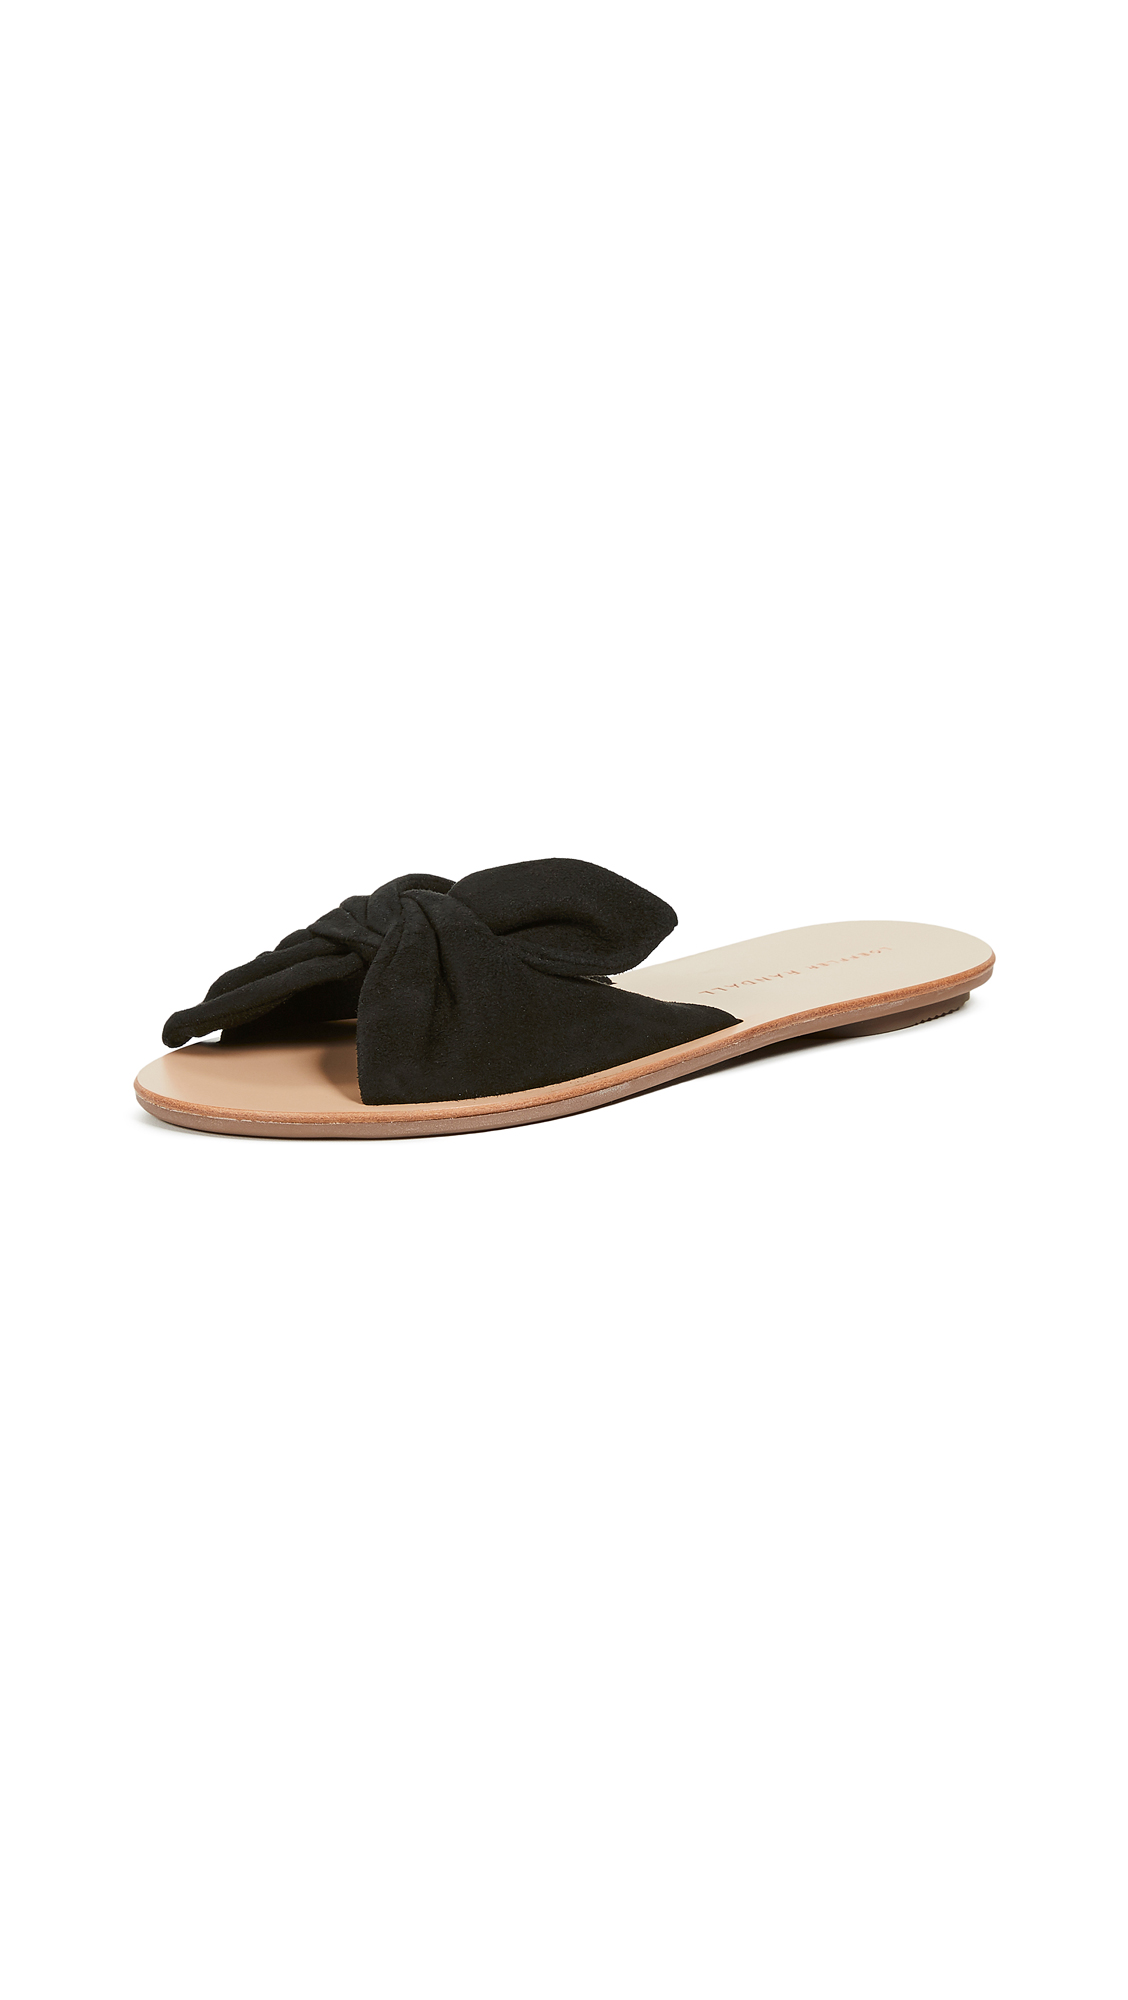 Loeffler Randall Phoebe Knotted Slide Sandals - Black